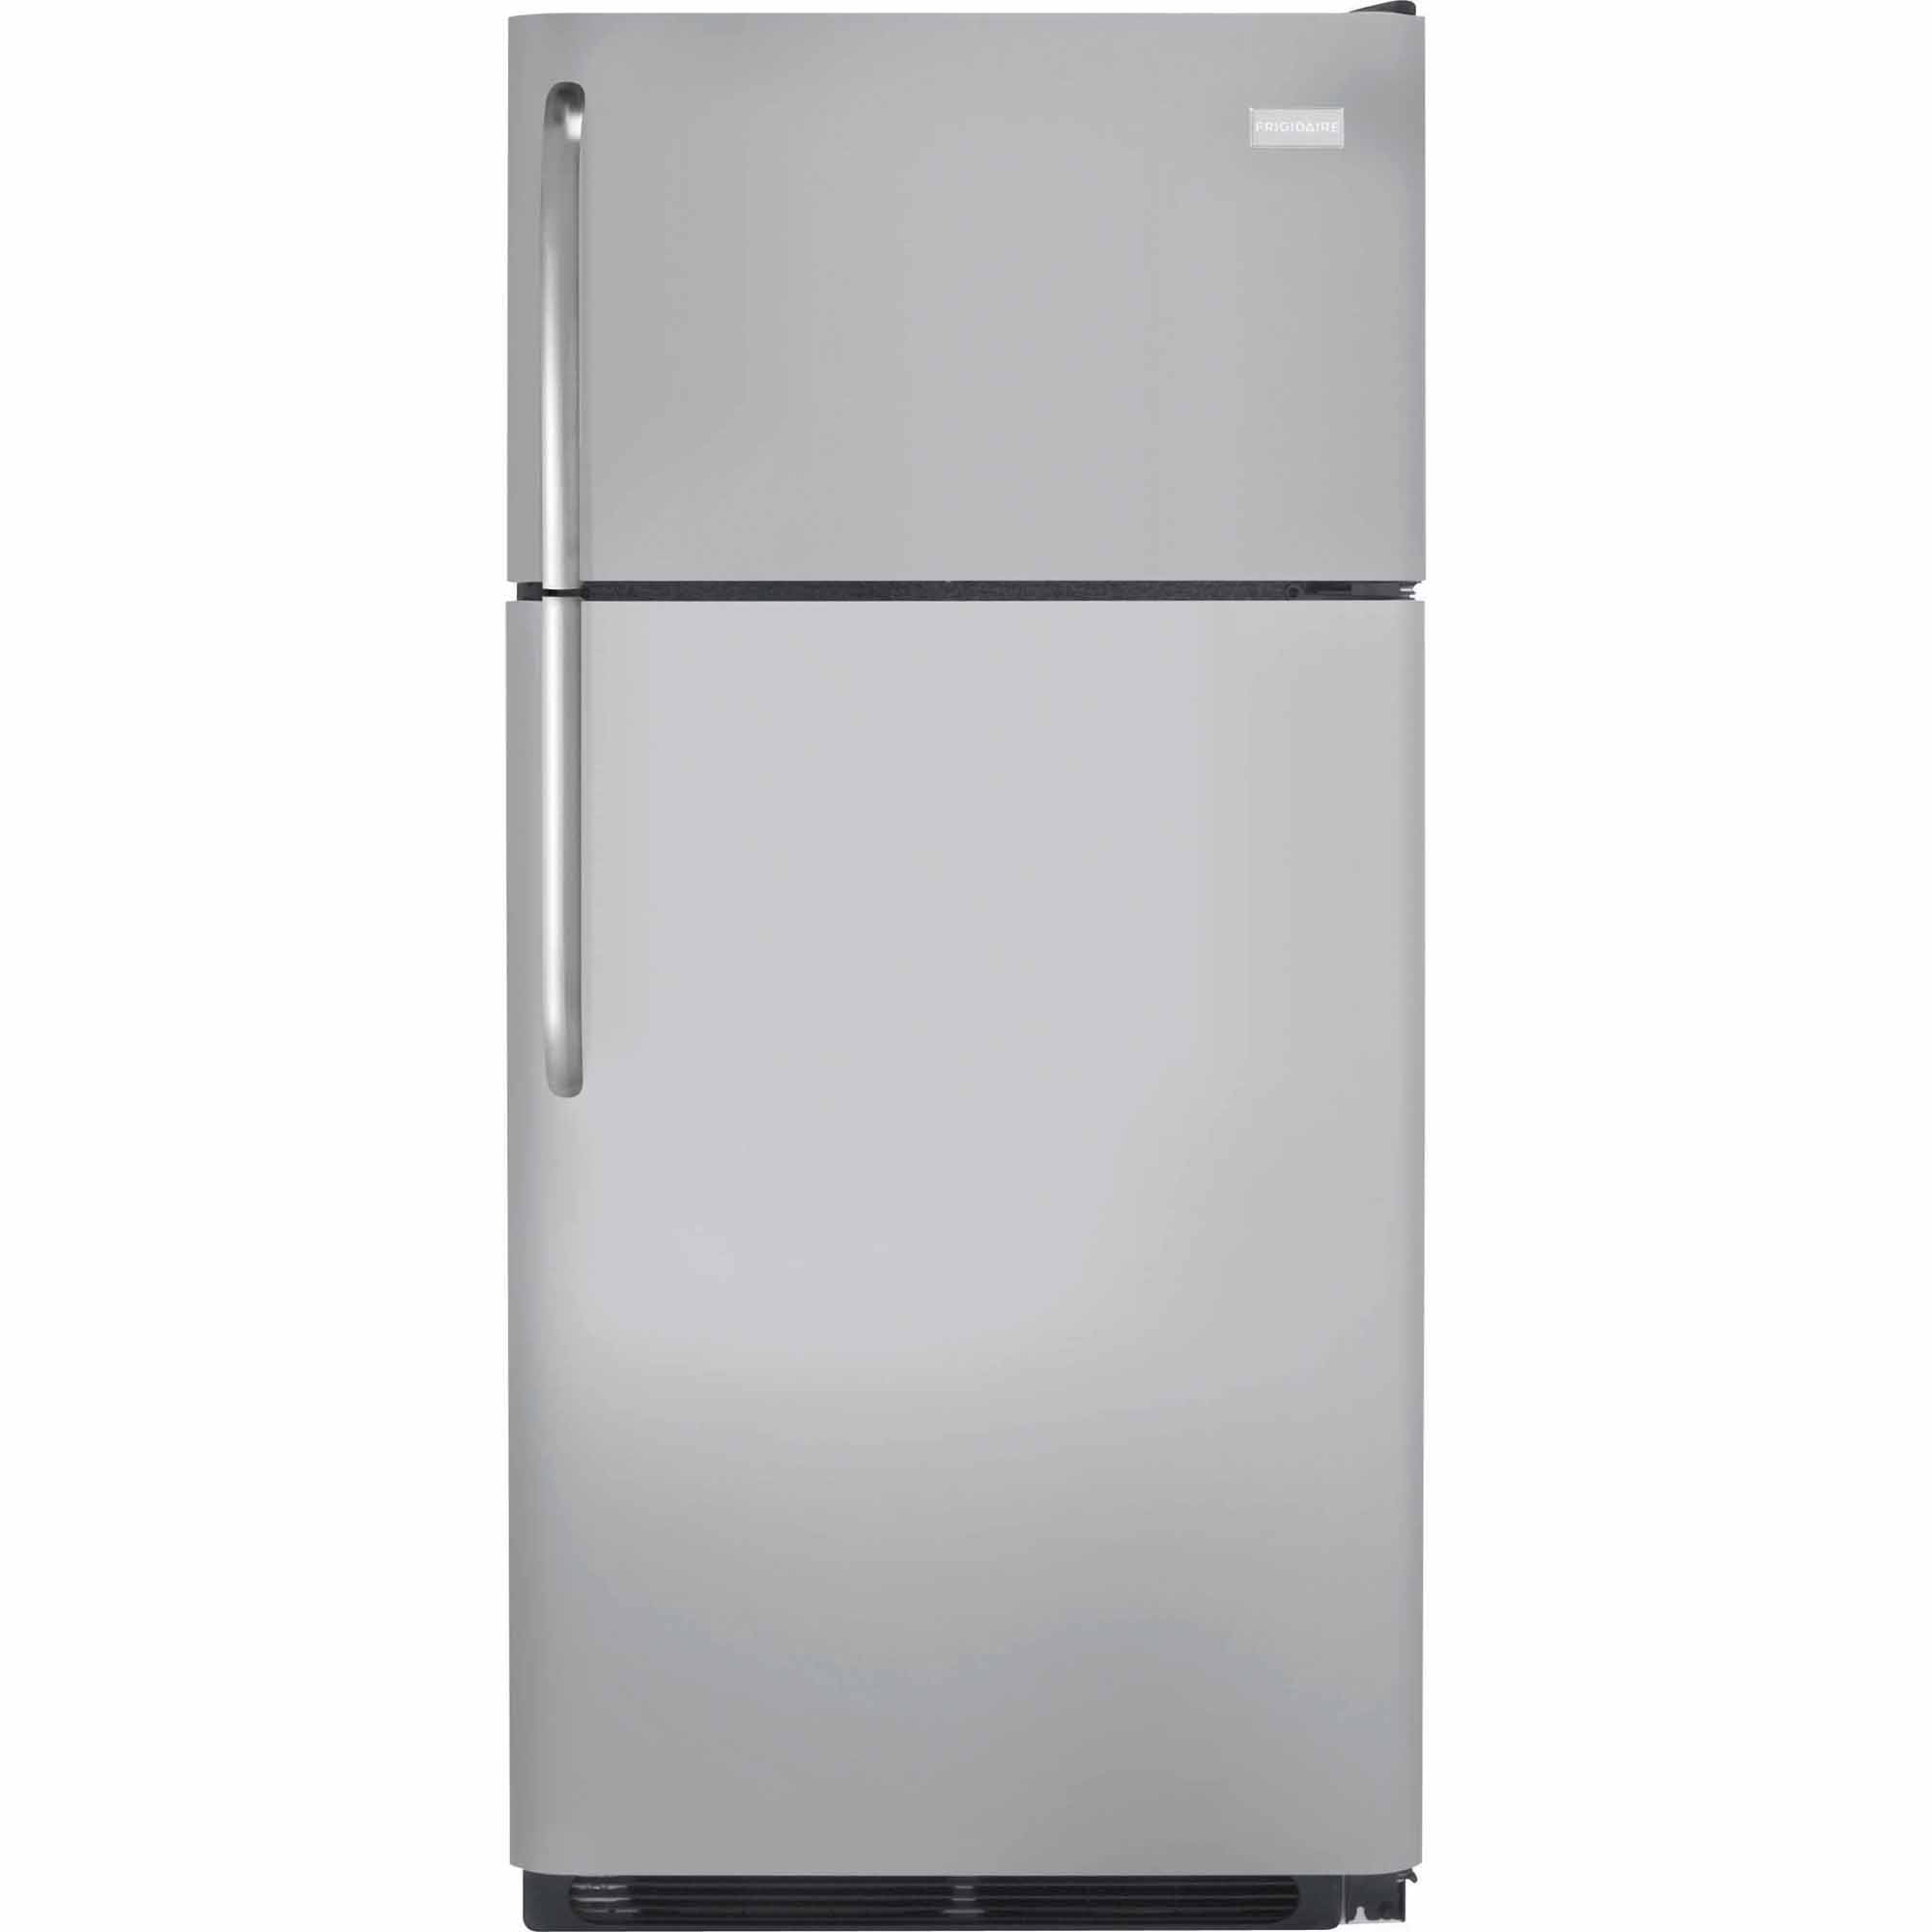 Kmart Freezer Energy Efficient Freezer Refrigerator Kmart